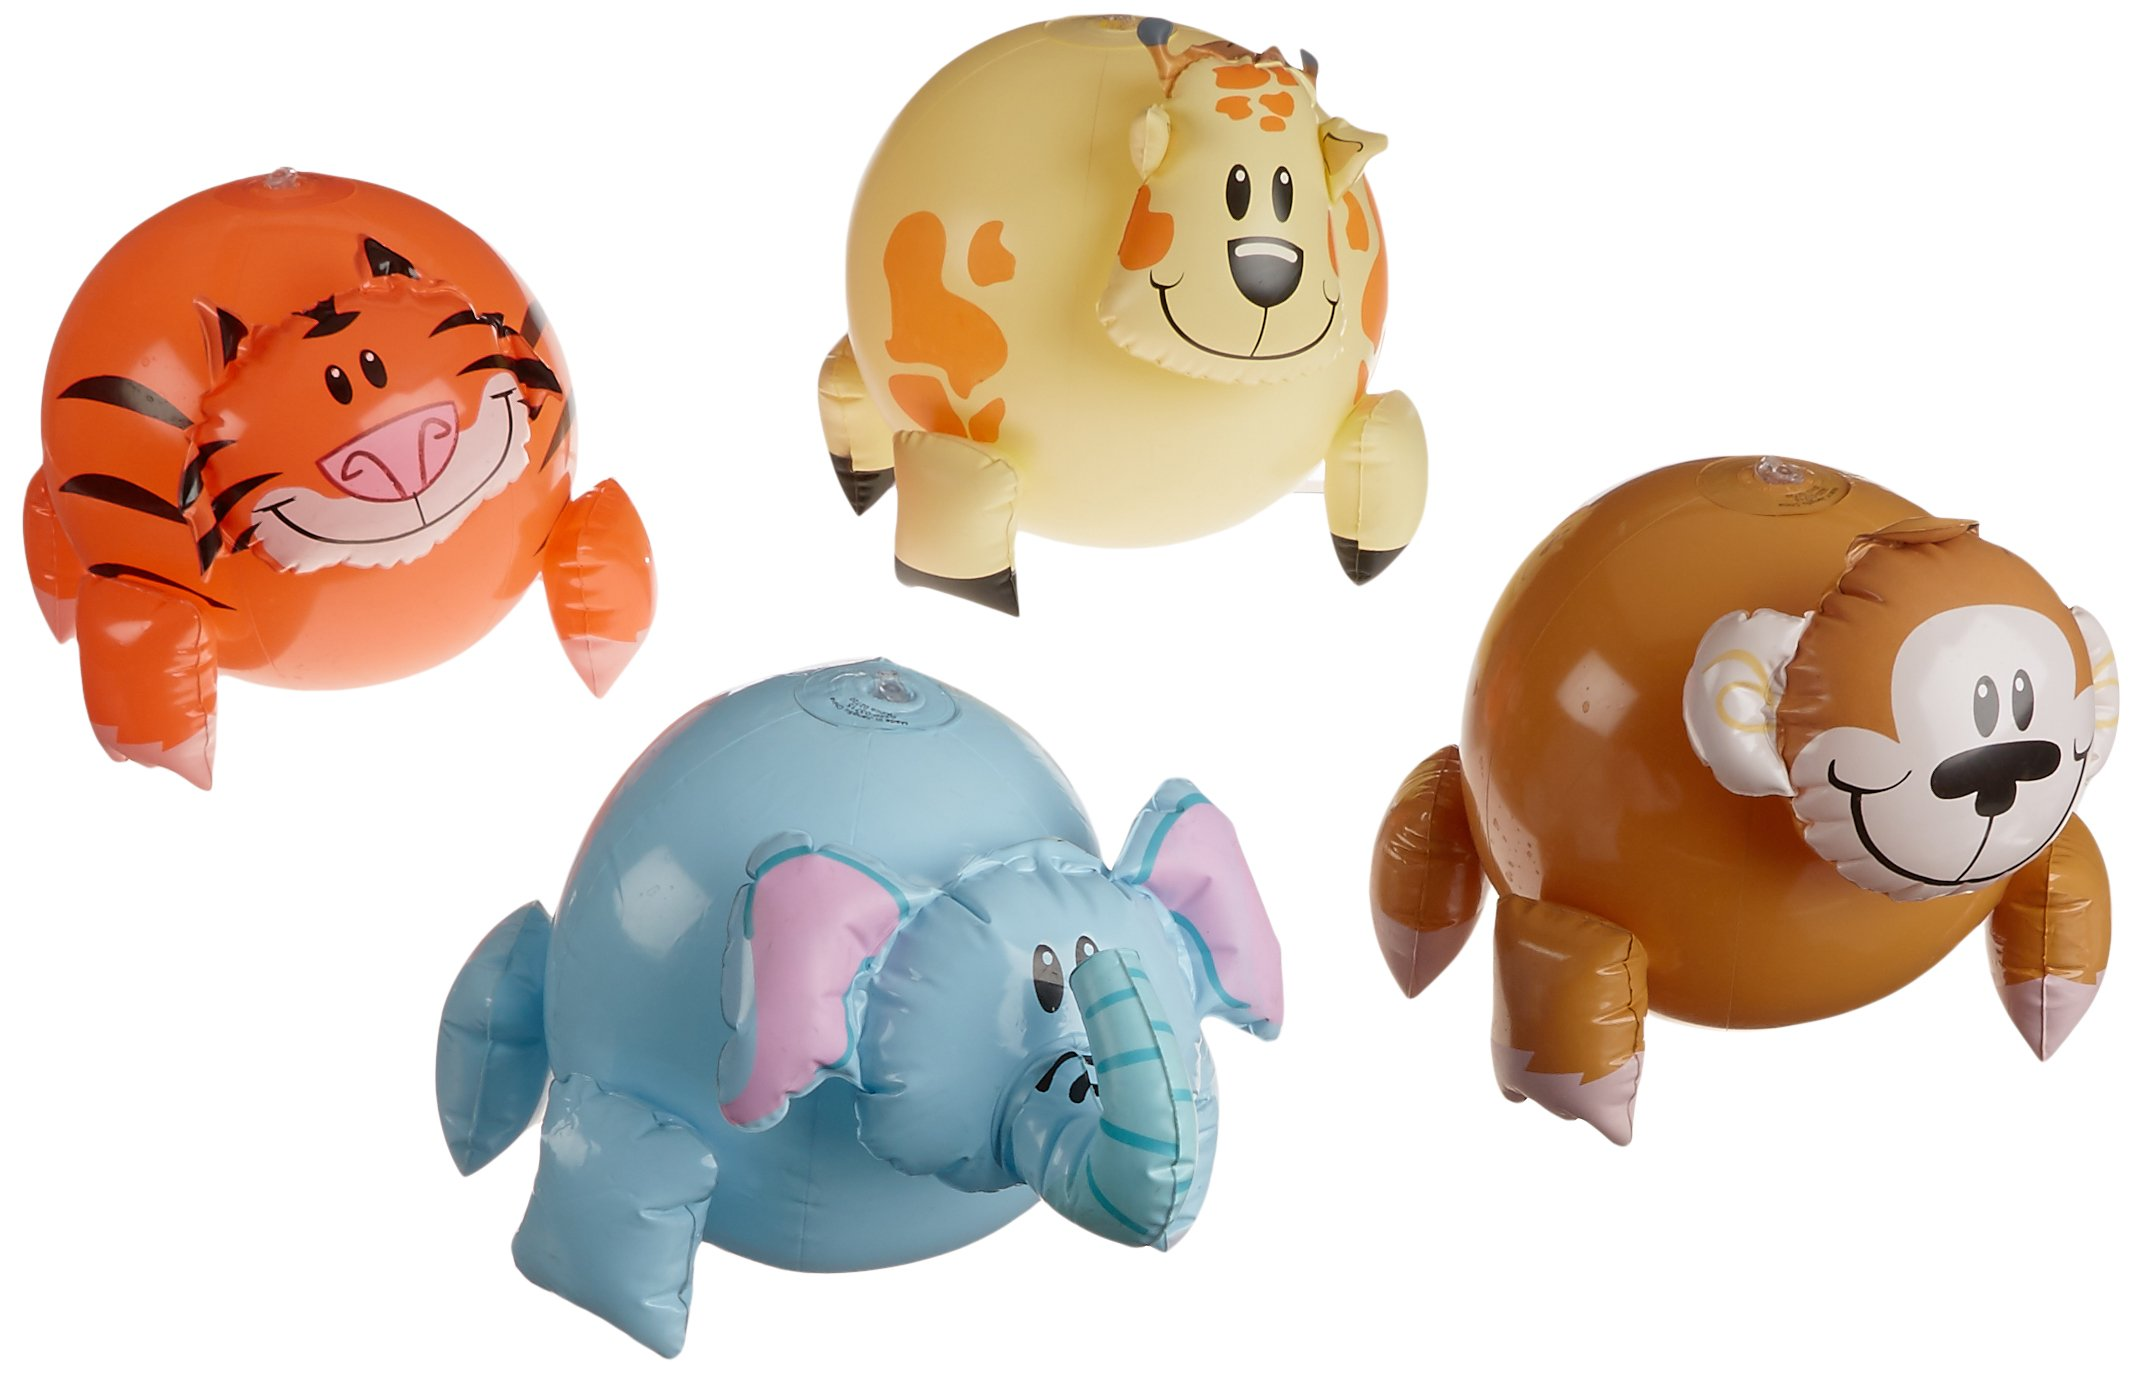 Rhode Island Novelty Inflatable Jungle Animal Shaped Beach Balls (12 Pack), Assorted Colors